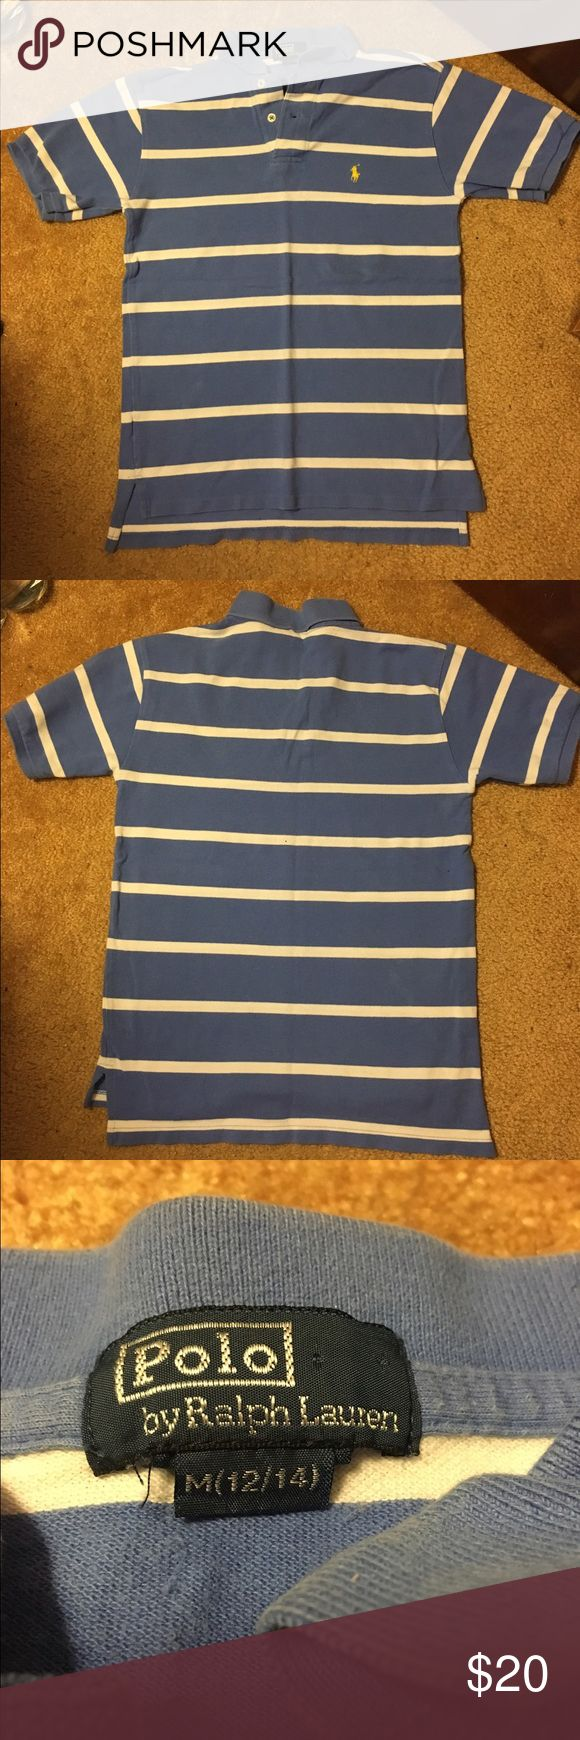 Polo Ralph Lauren boys striped polo shirt Lightly worn still in good condition boys size M(12/14) Polo by Ralph Lauren Shirts & Tops Polos